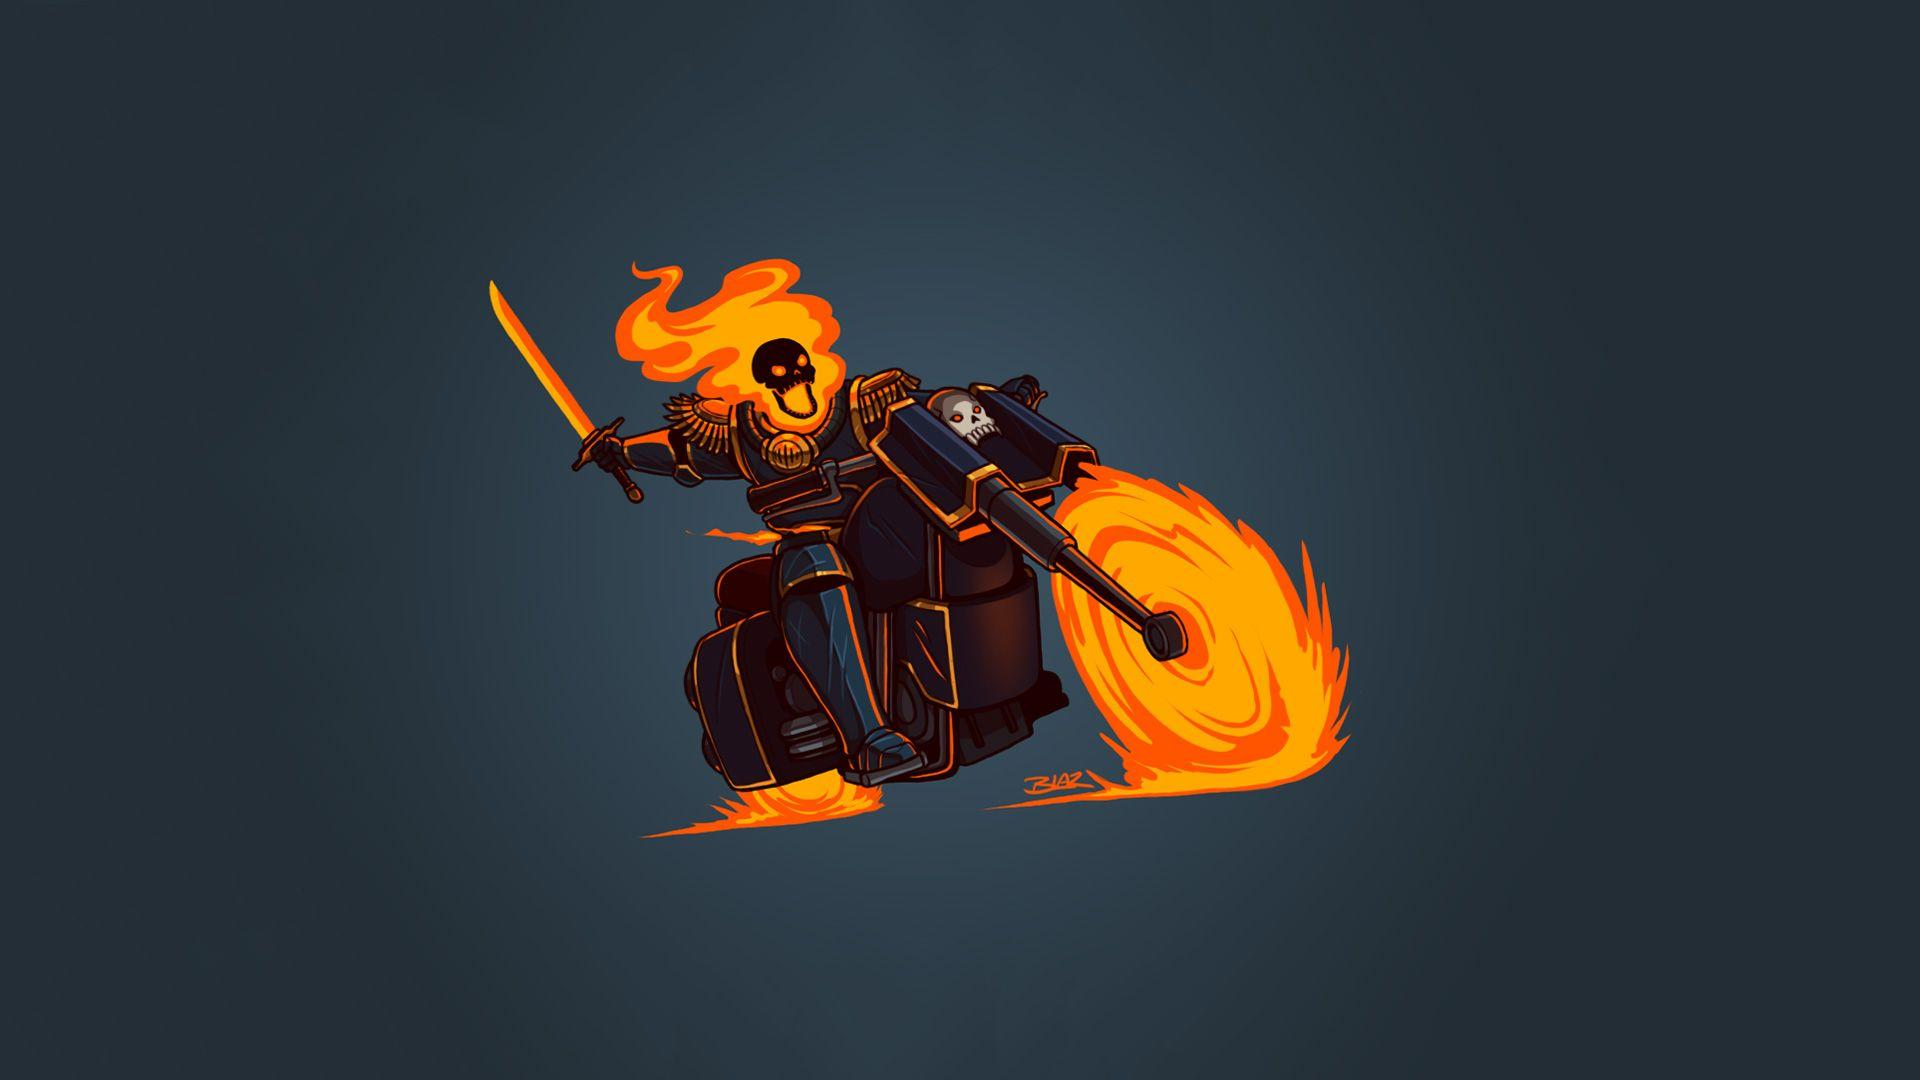 Ghost Rider Minimalism Hd, HD Artist, 4k Wallpapers, Image